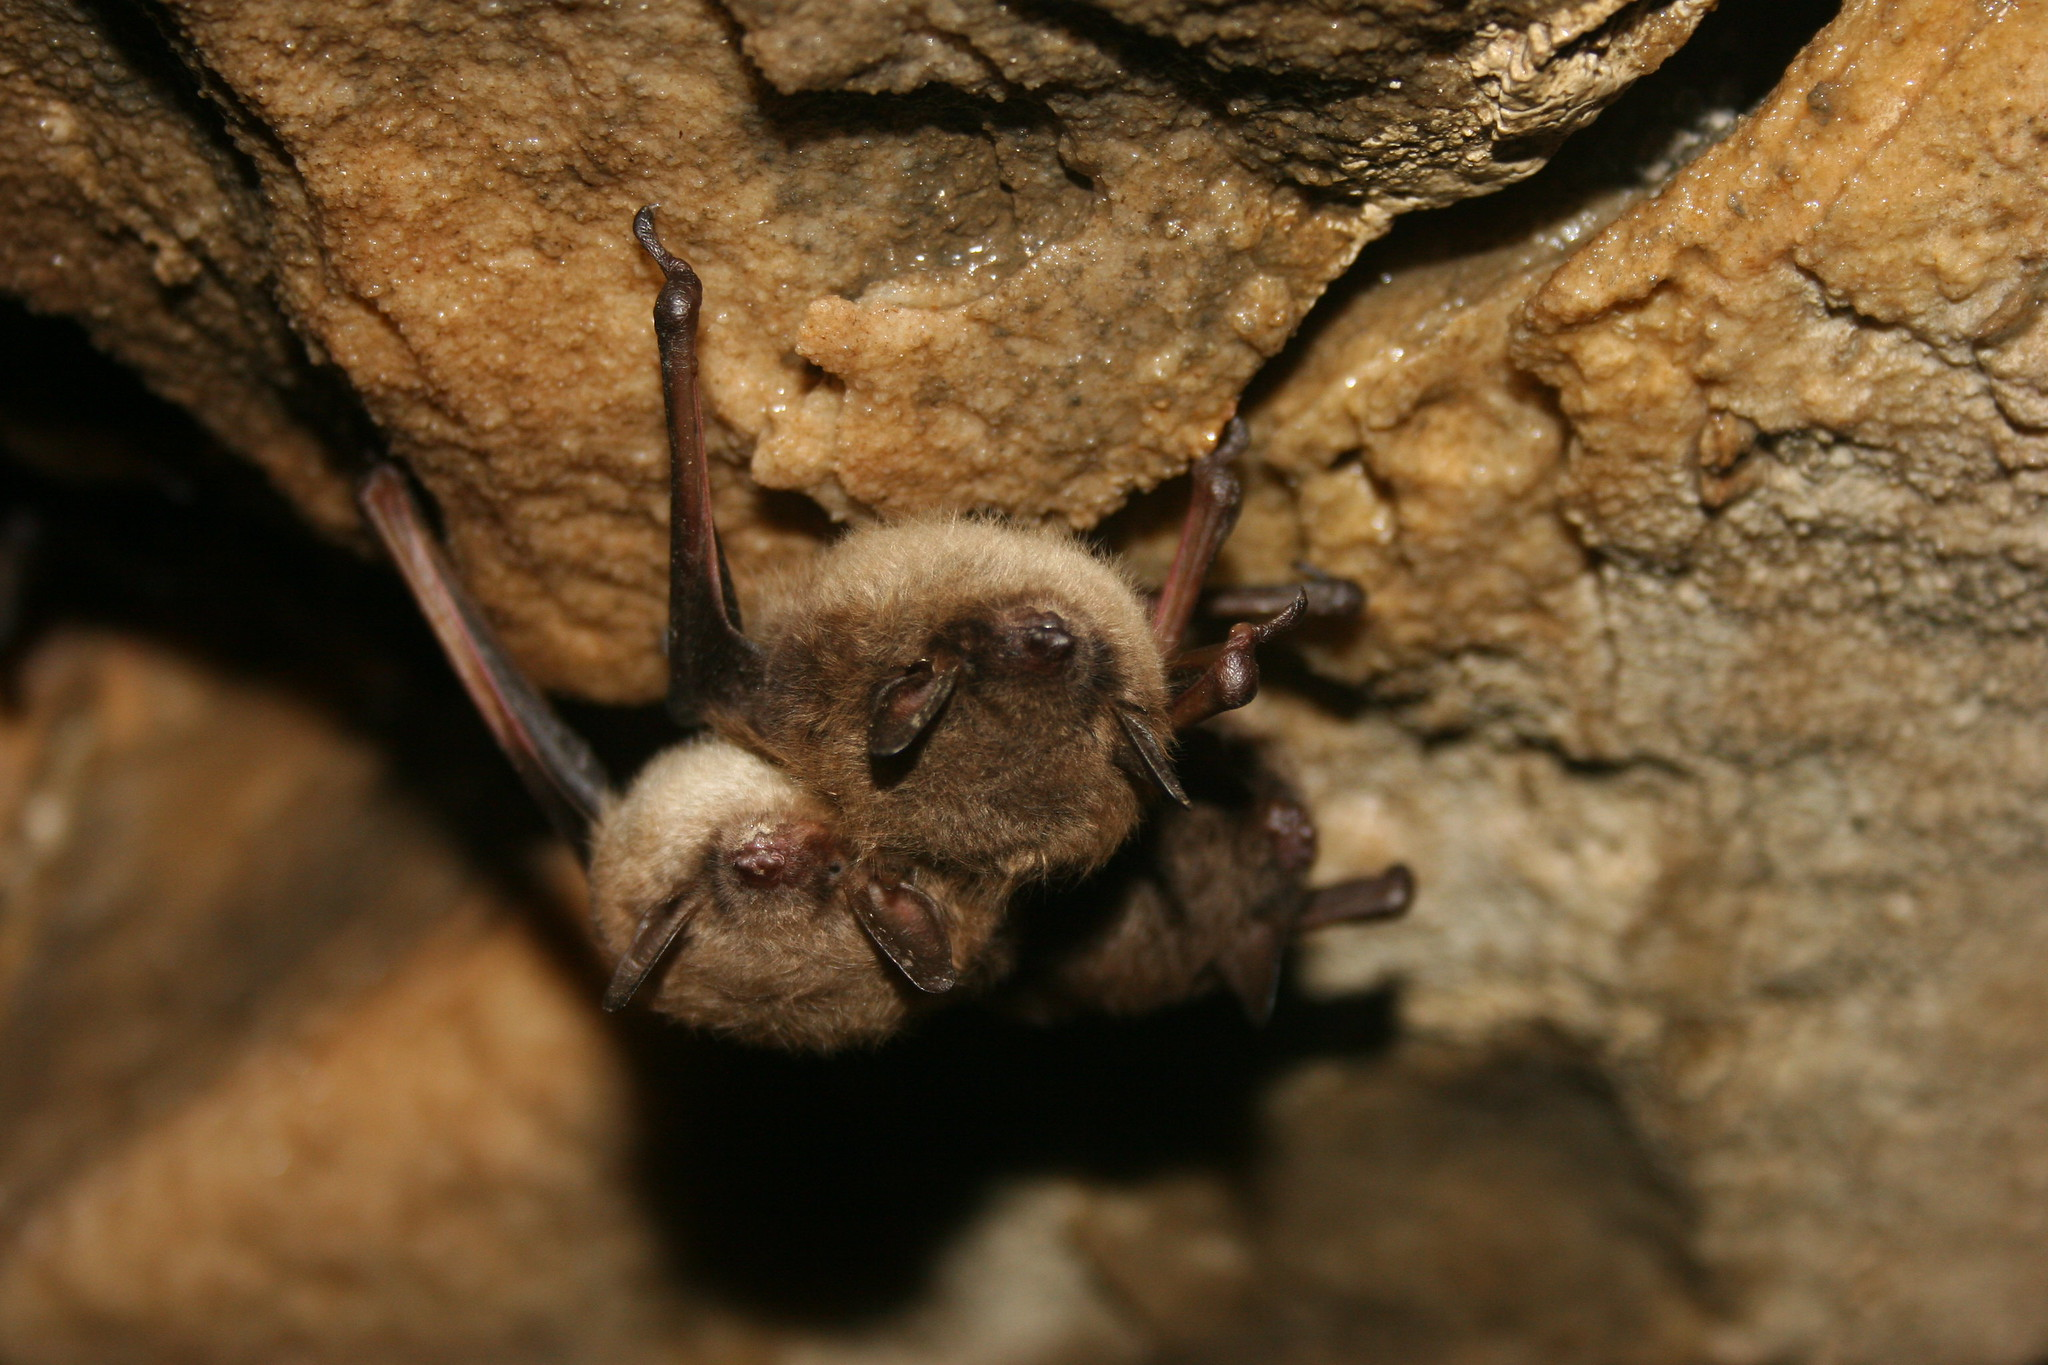 A group of little brown bats hang from the top of a cave.